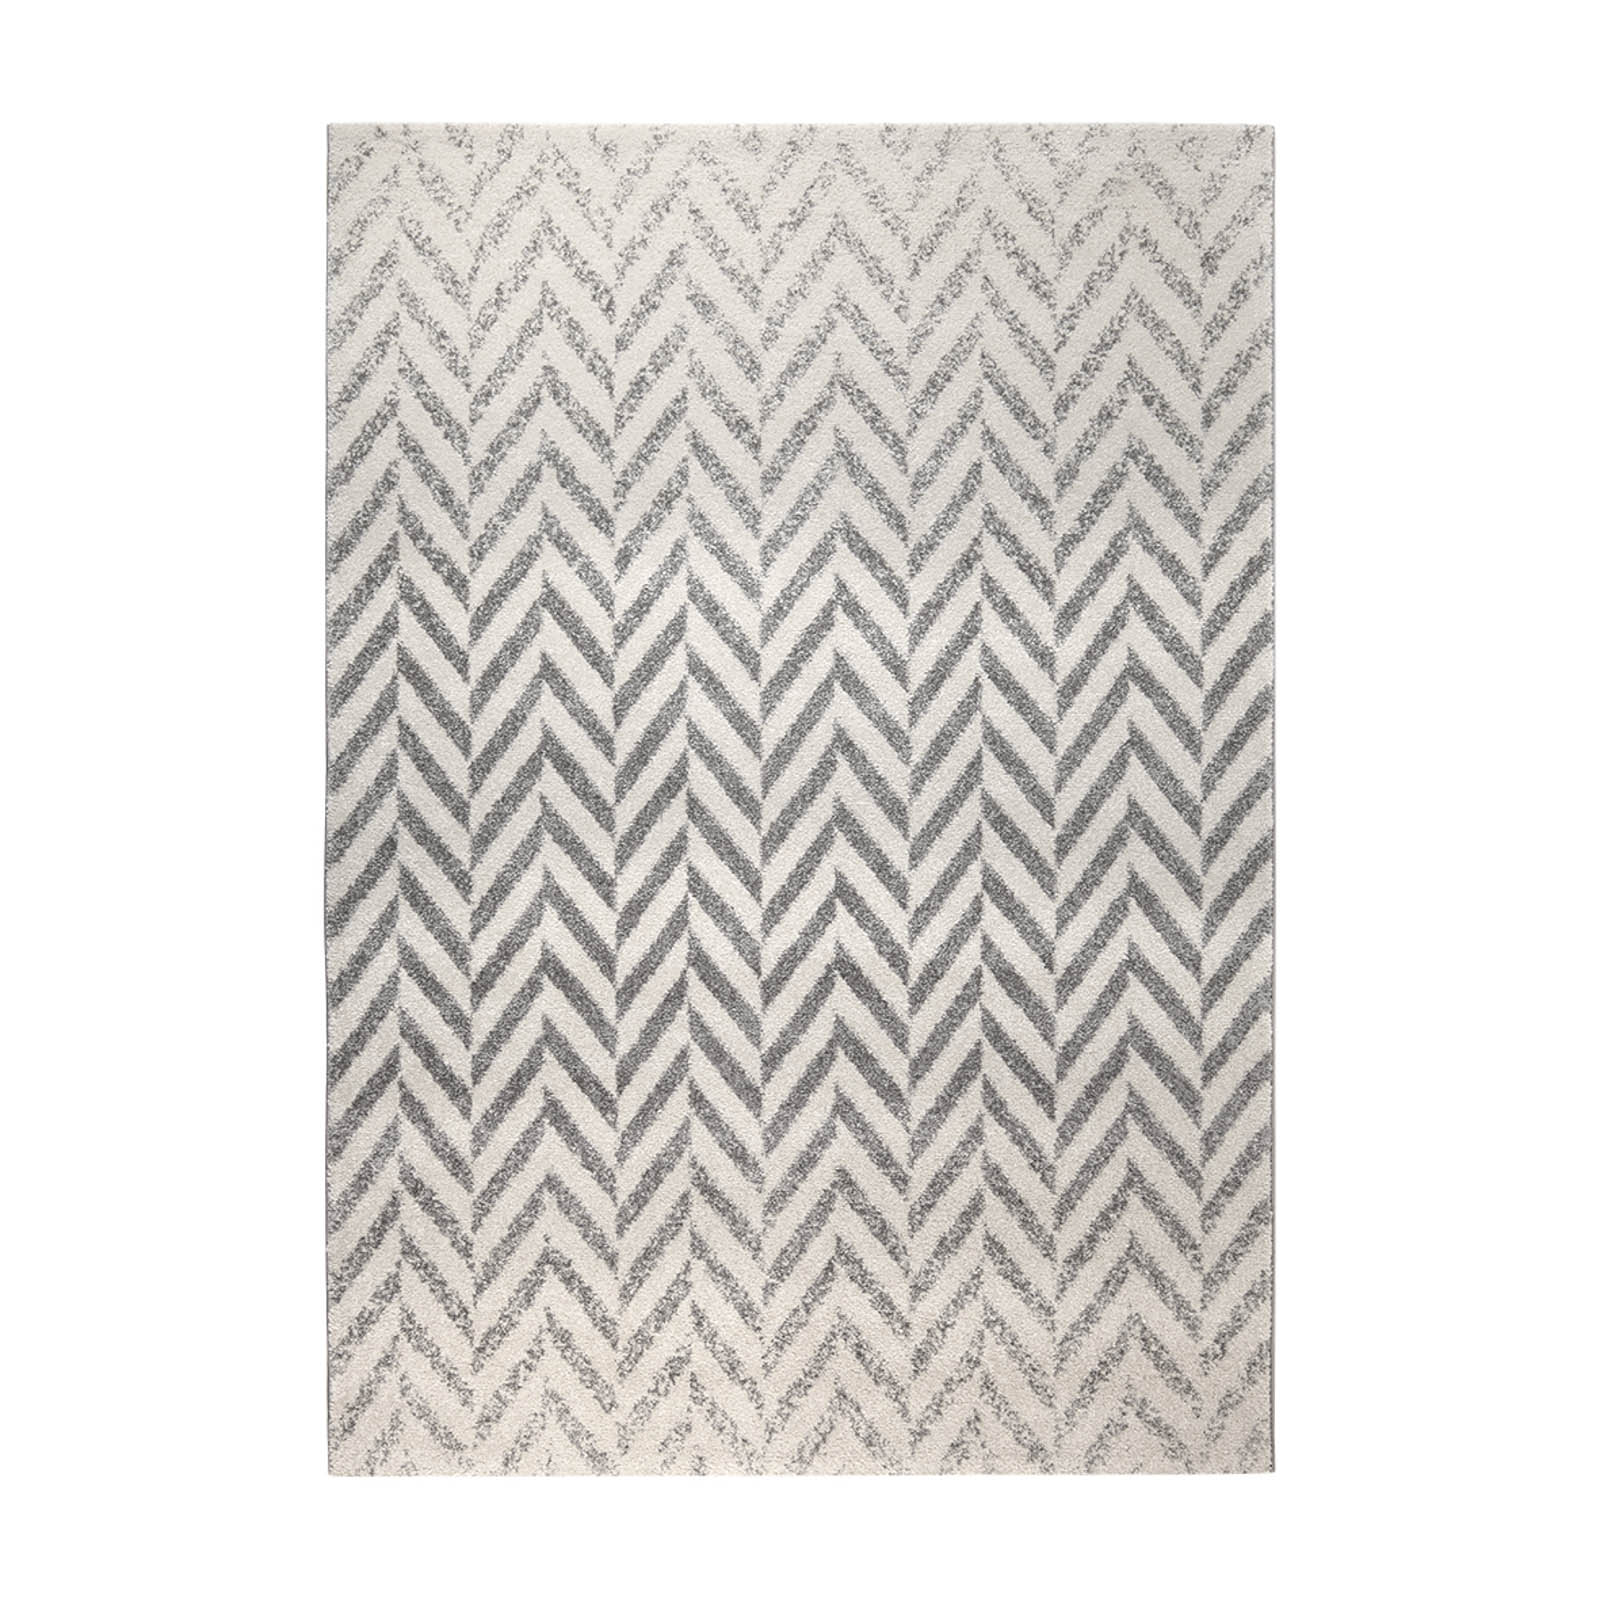 Highway Rugs 2081 695 by Esprit in Ivory and Grey